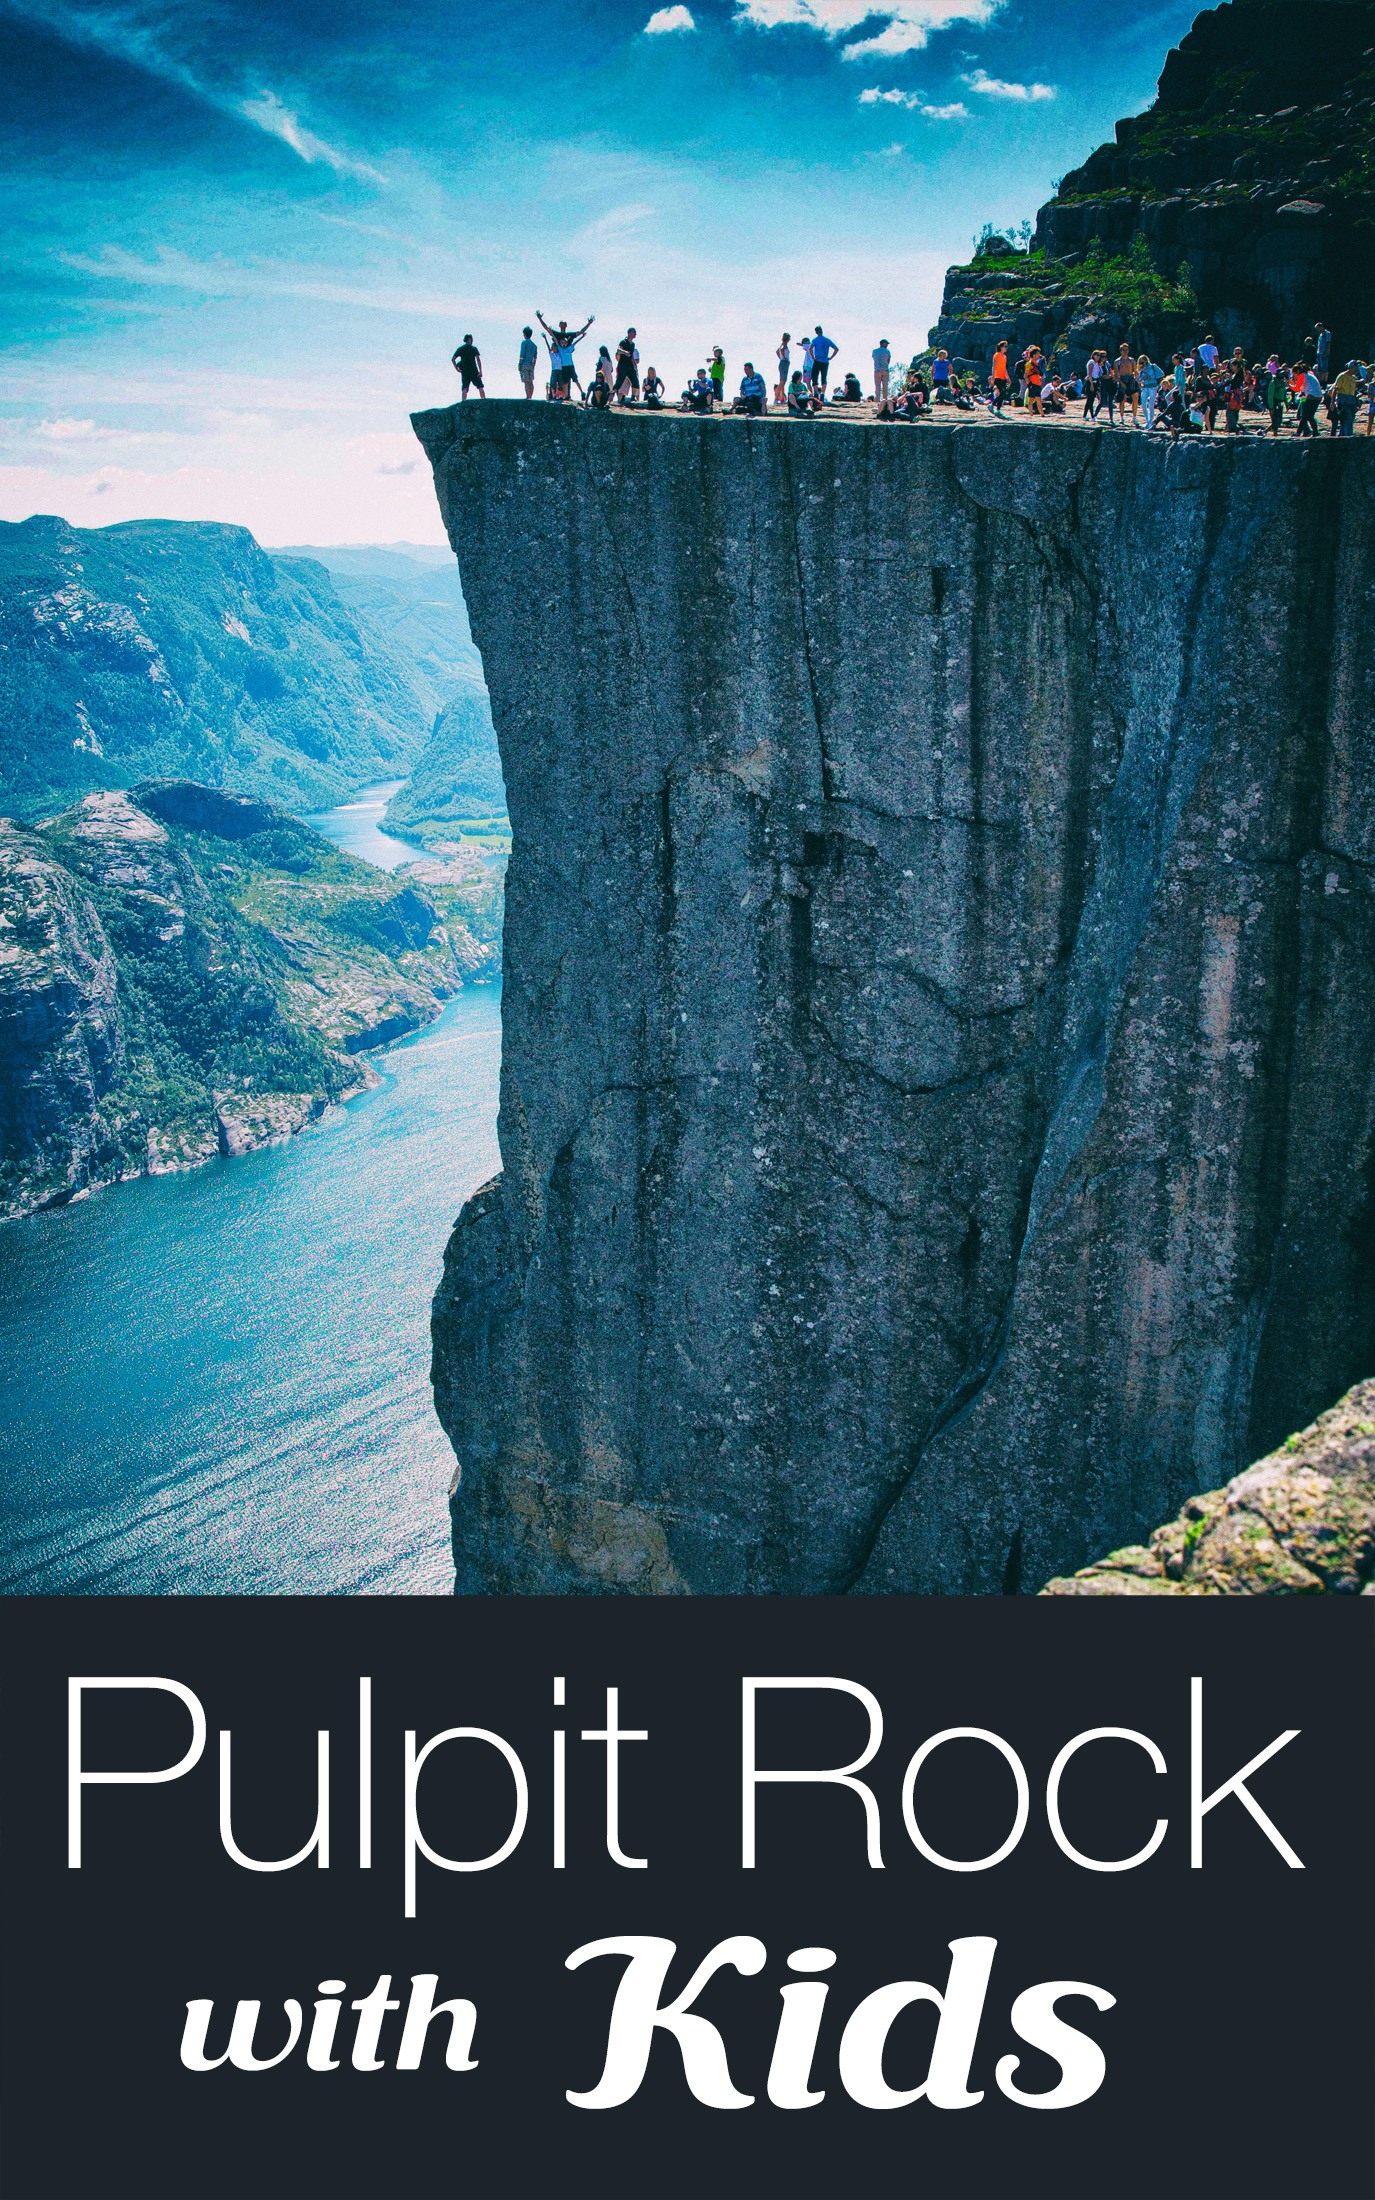 Pulpit Rock with Kids